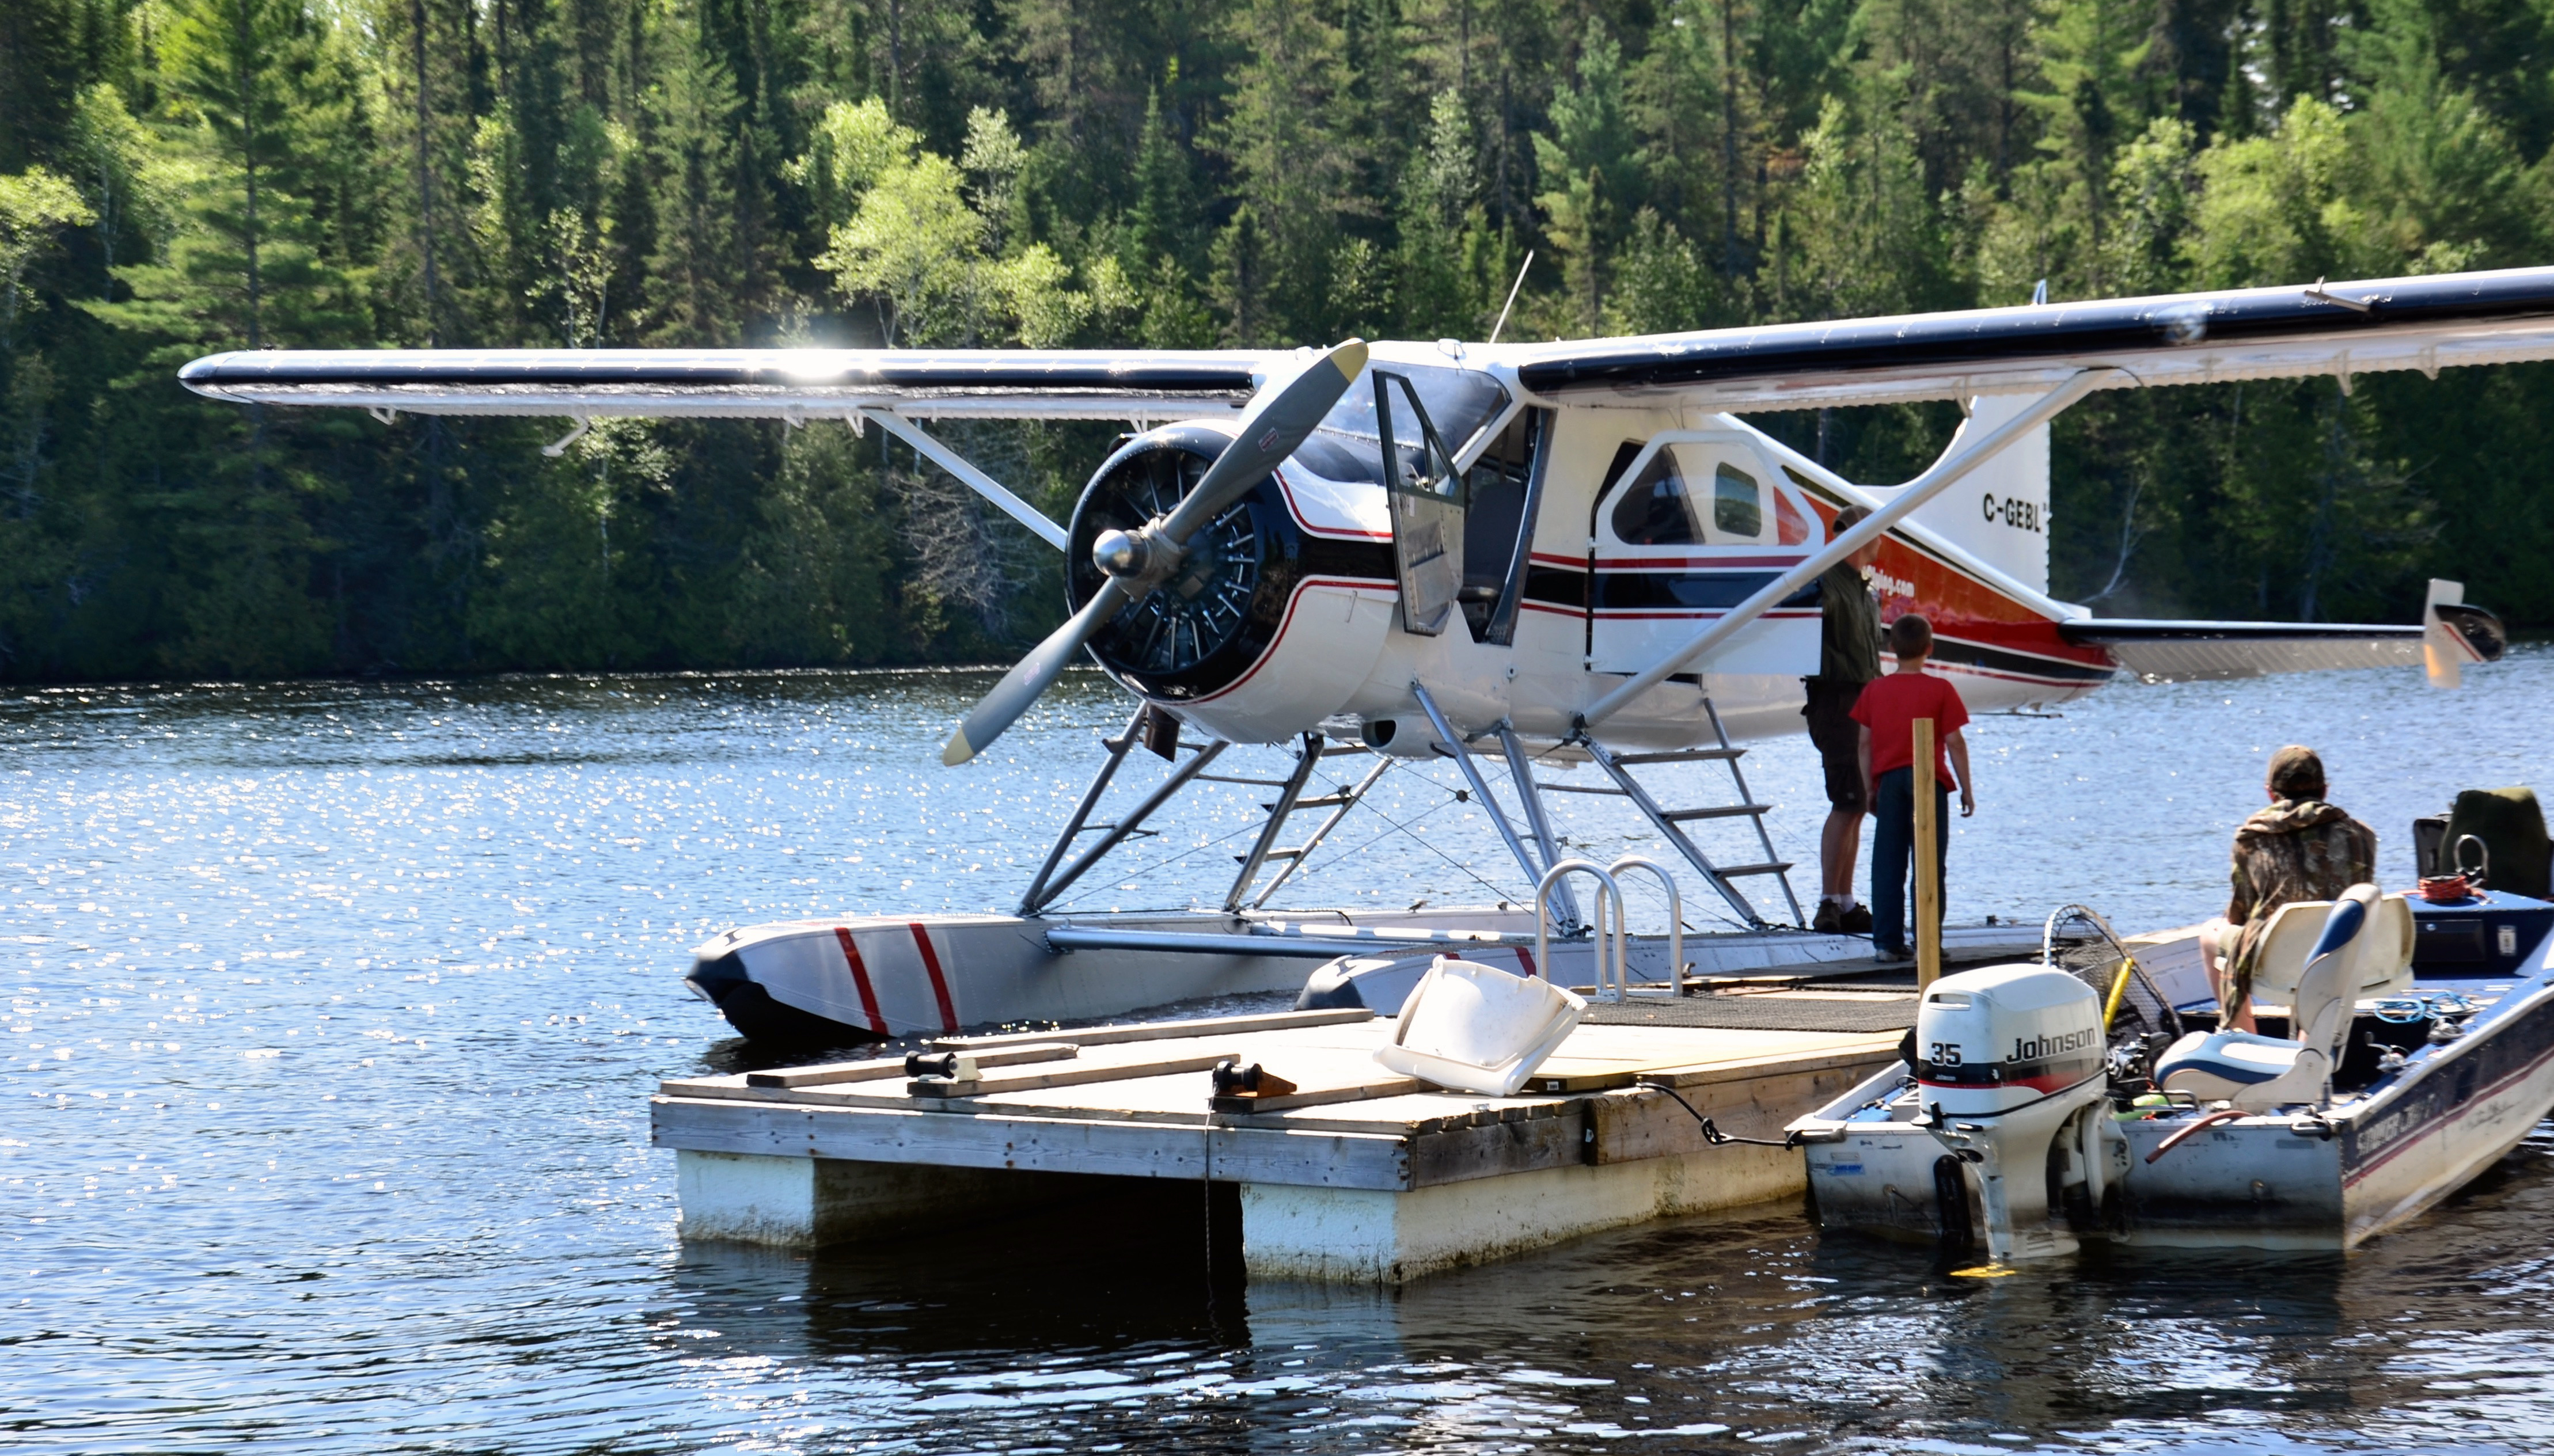 Northwest flying inc sunset country ontario canada for Northwest fly fishing outfitters